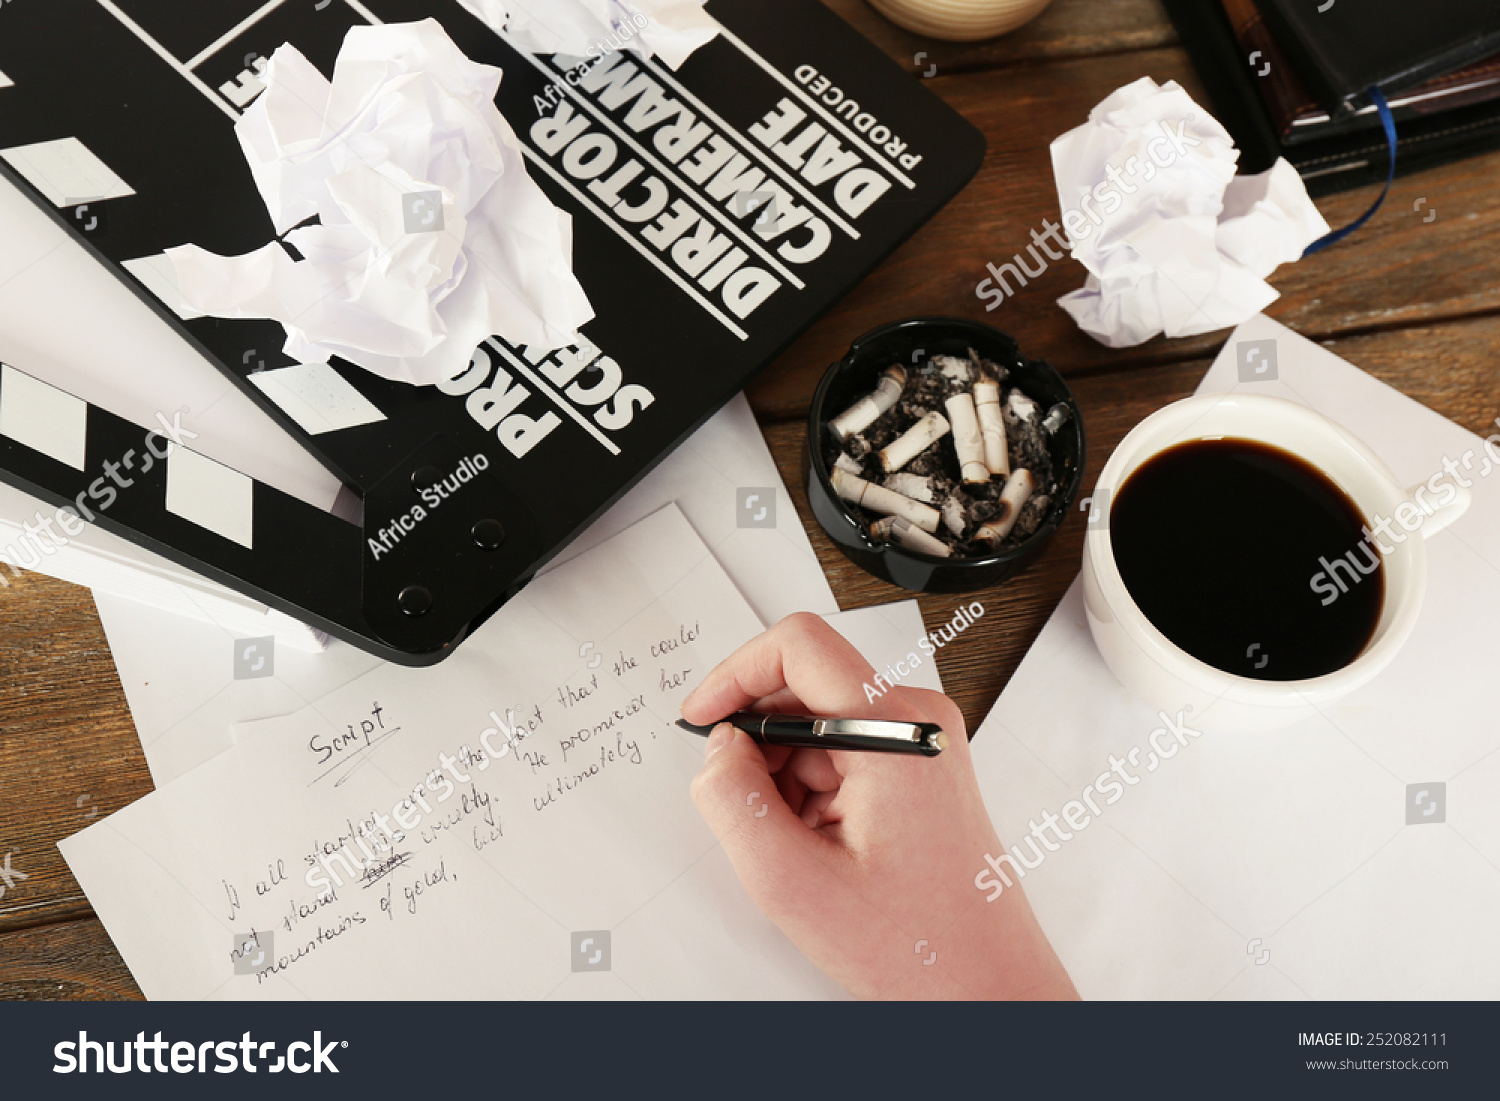 Female Hand Writing Script Desktop Moving Photo 252082111 – Script Writing